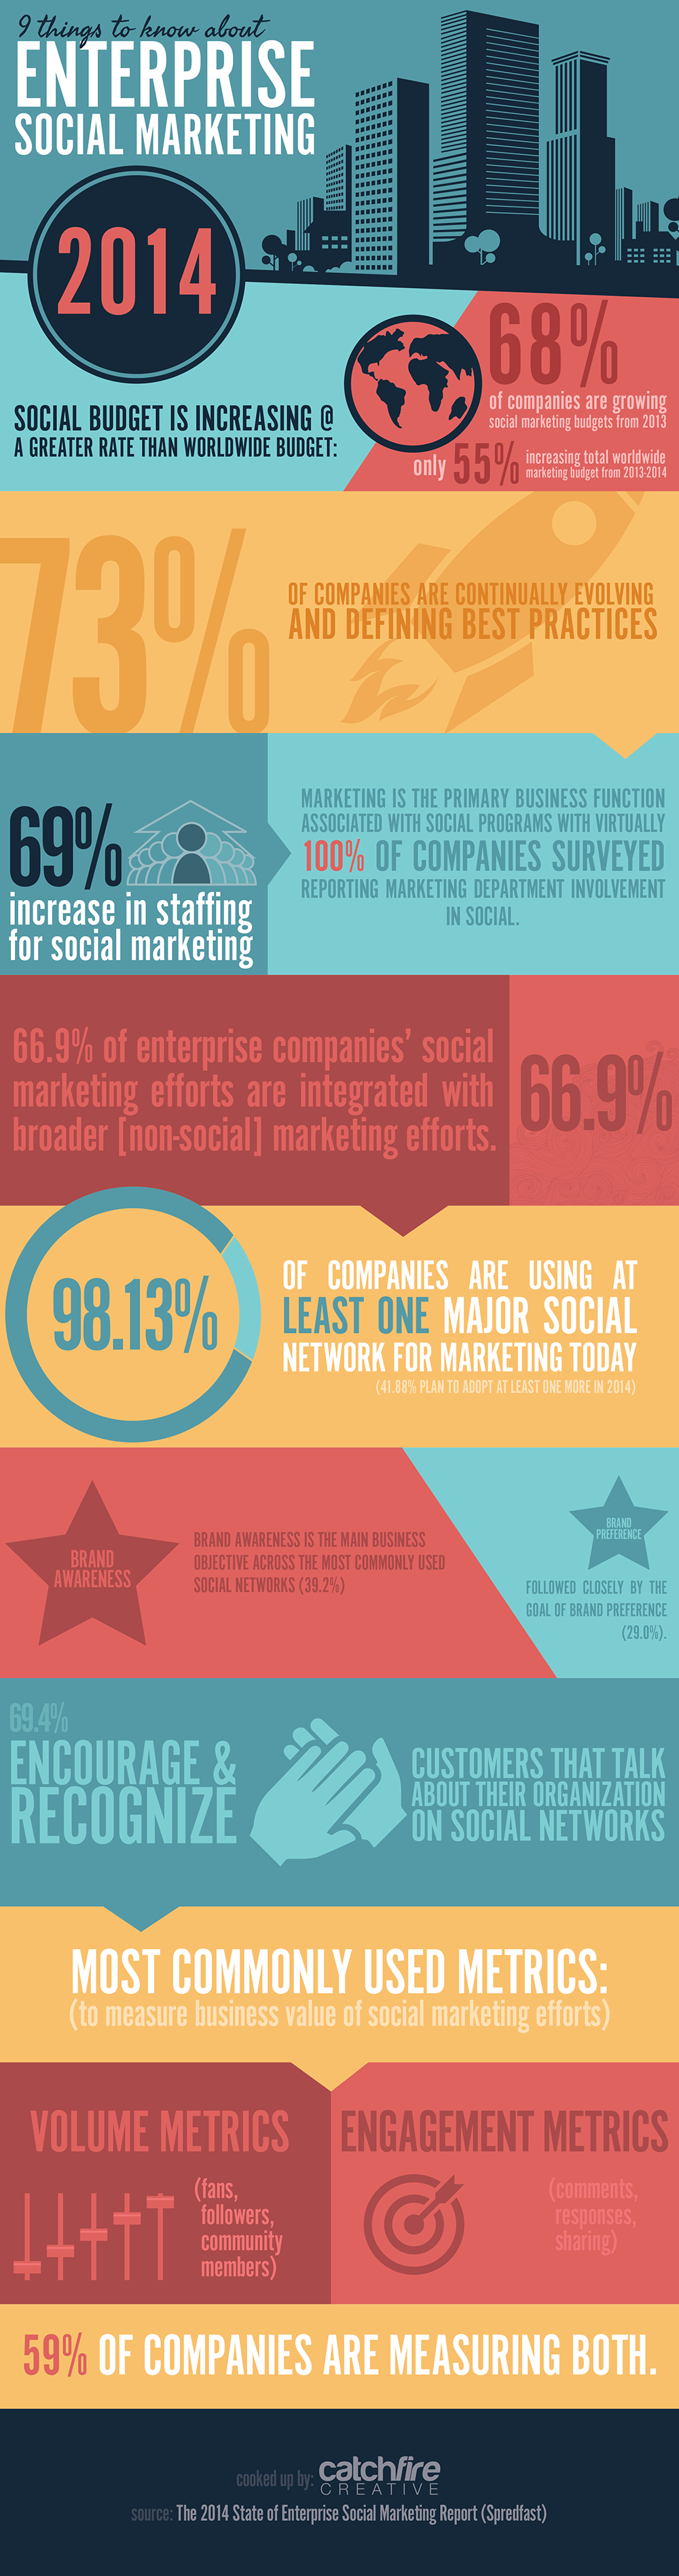 9 Things to Know About Enterprise Social Marketing Infographic